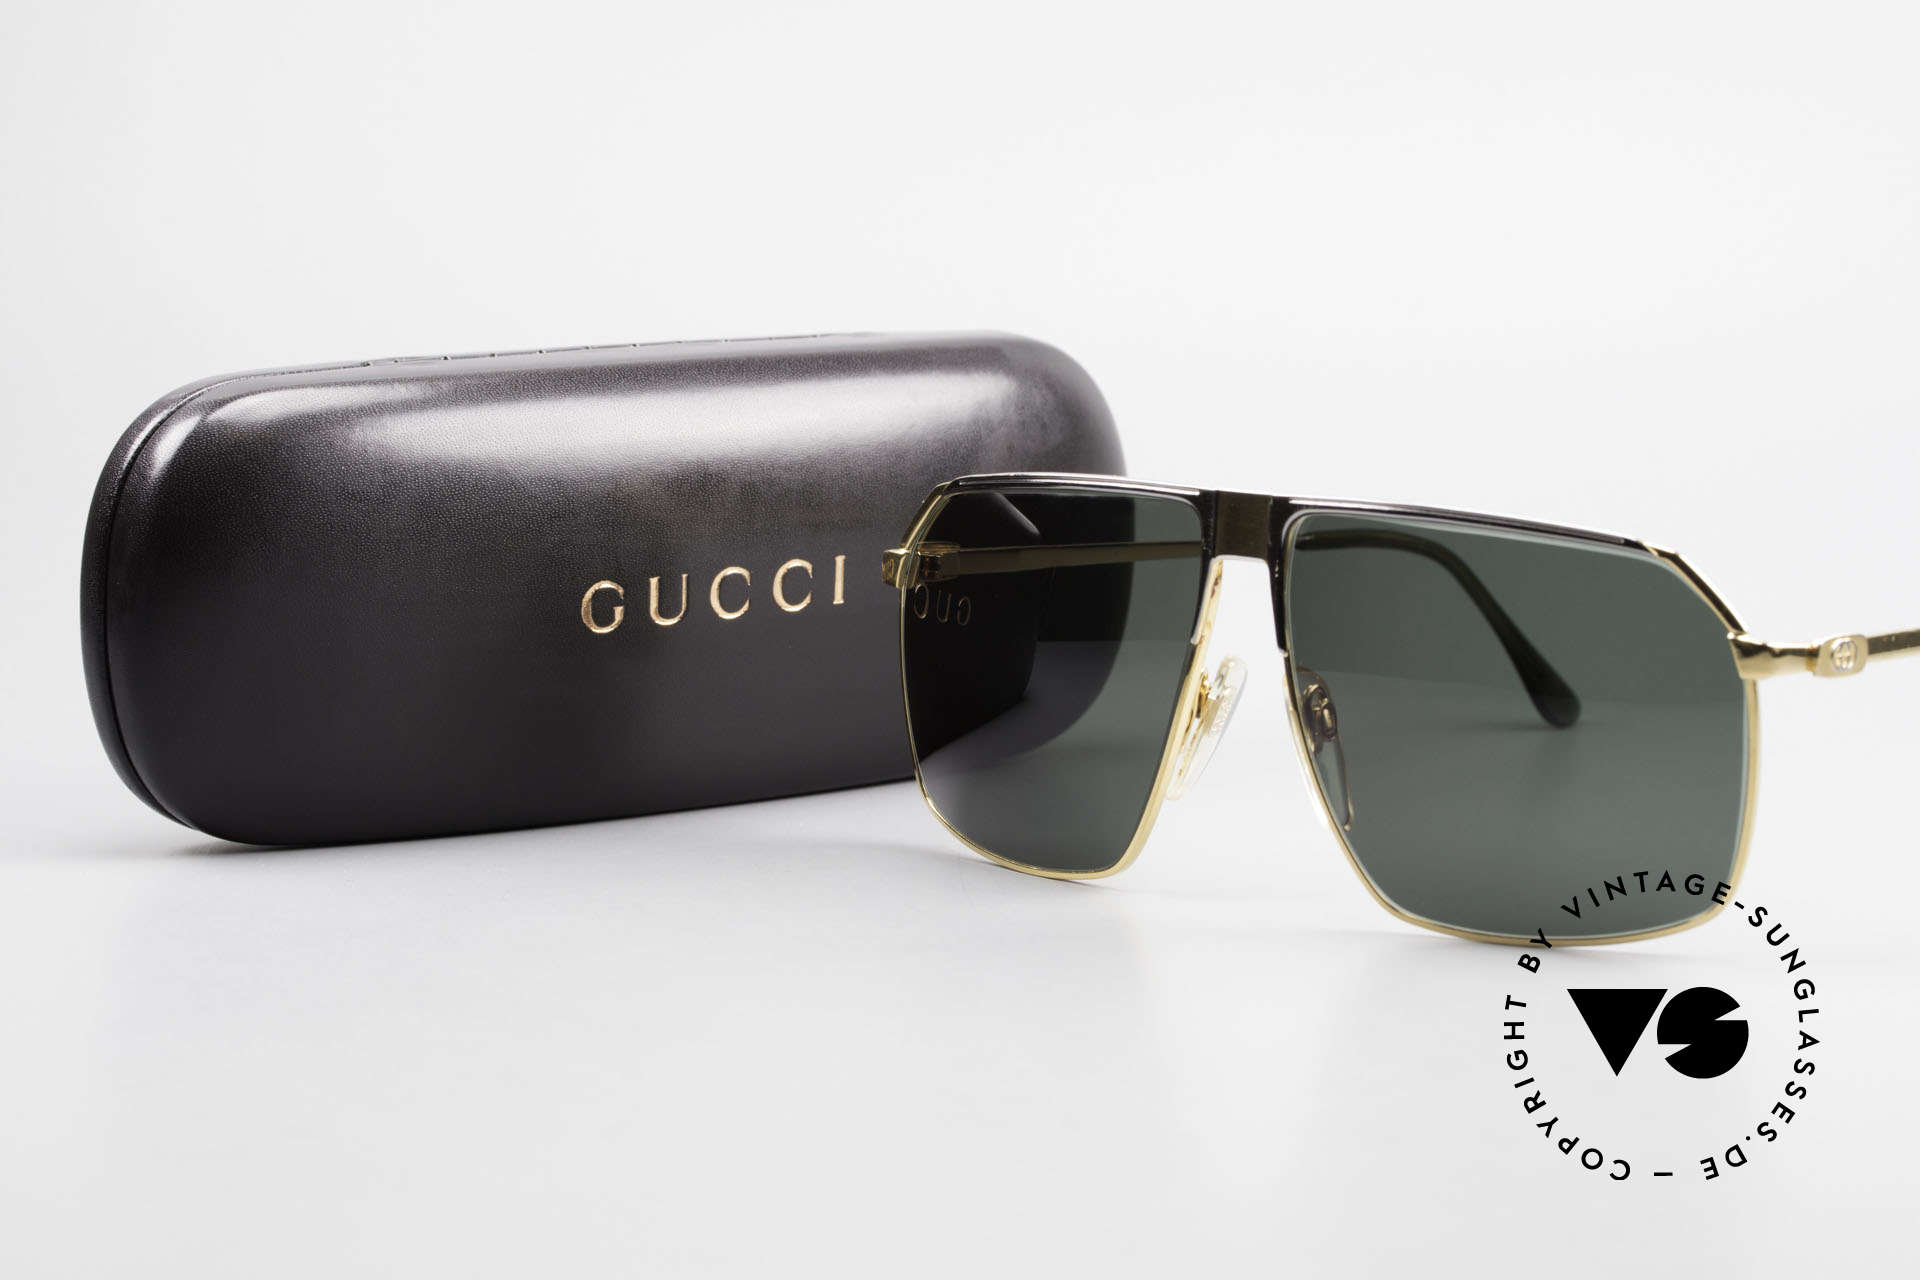 Gucci GG41 22kt Gold-Plated Sunglasses, Size: large, Made for Men